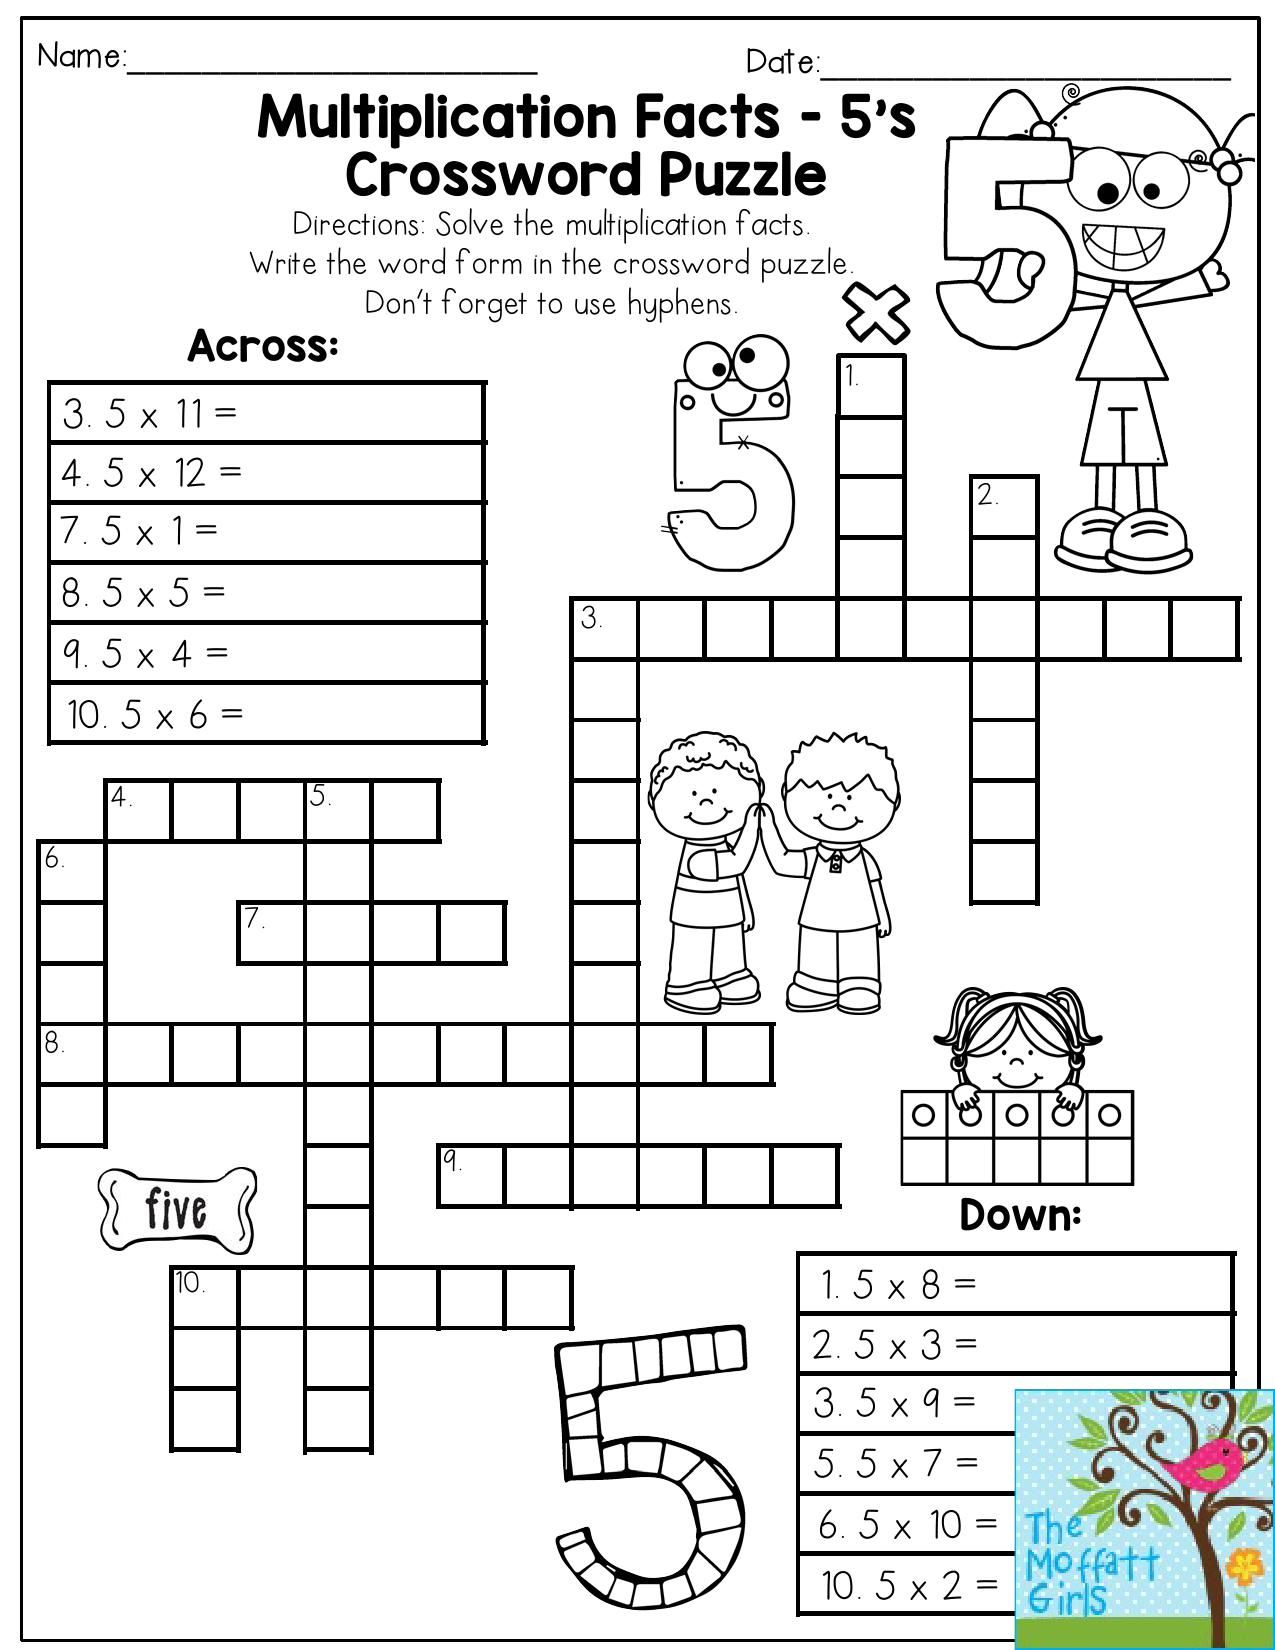 Multiplication Facts Crossword Puzzle- Third Grade Students Love - 4Th Grade Crossword Puzzles Printable